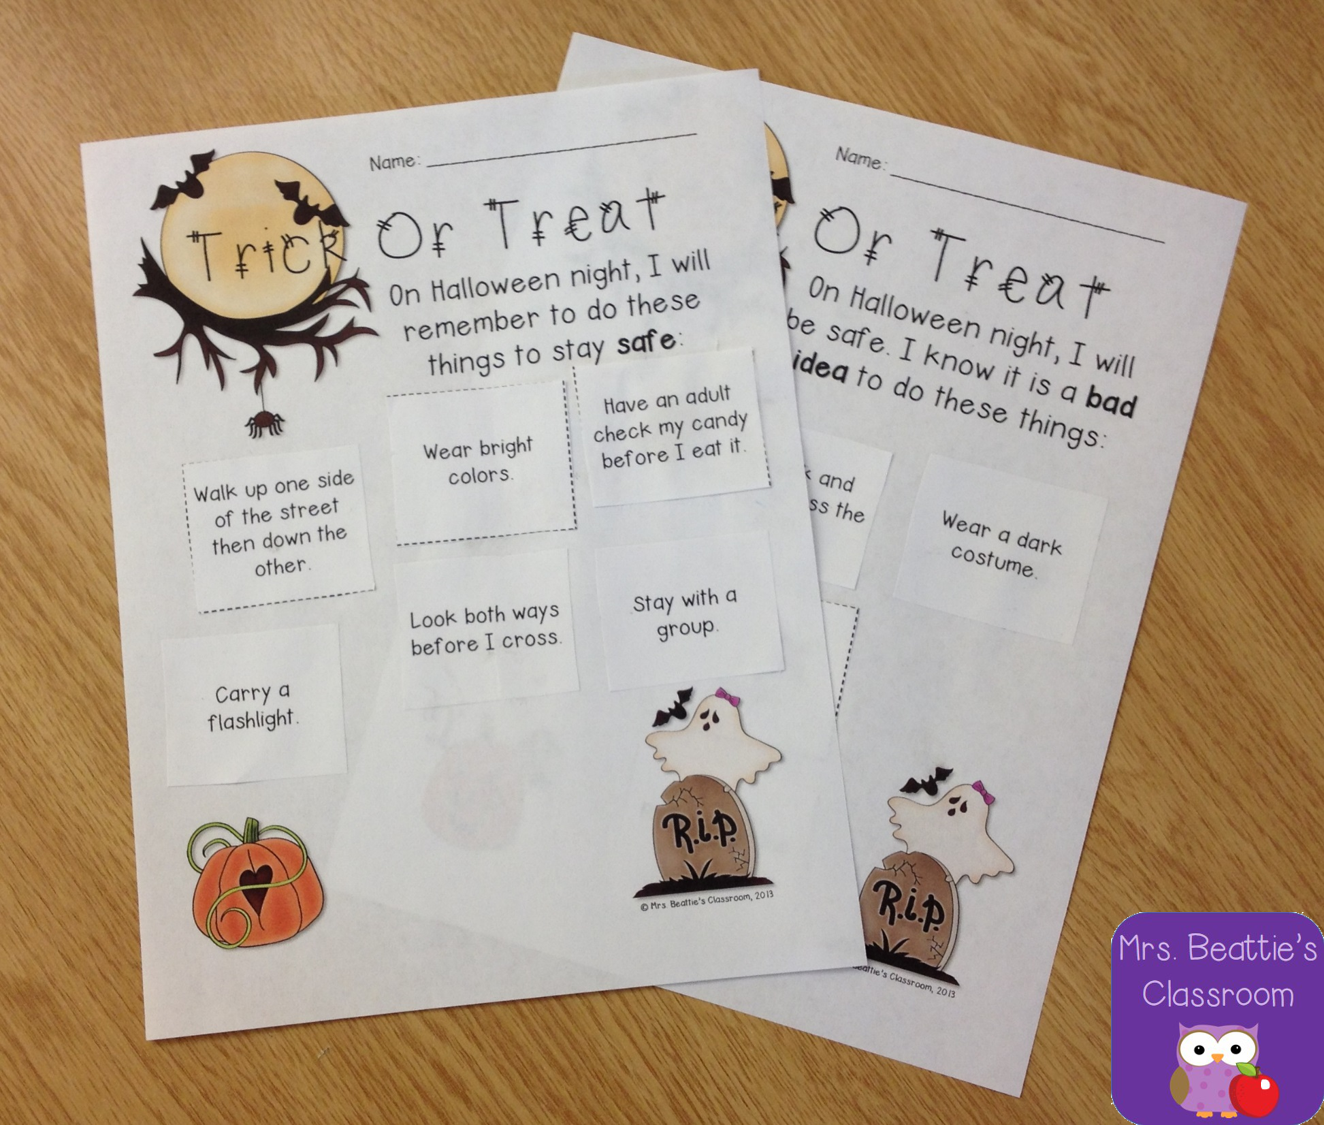 How To Promote Halloween Safety With Your Students